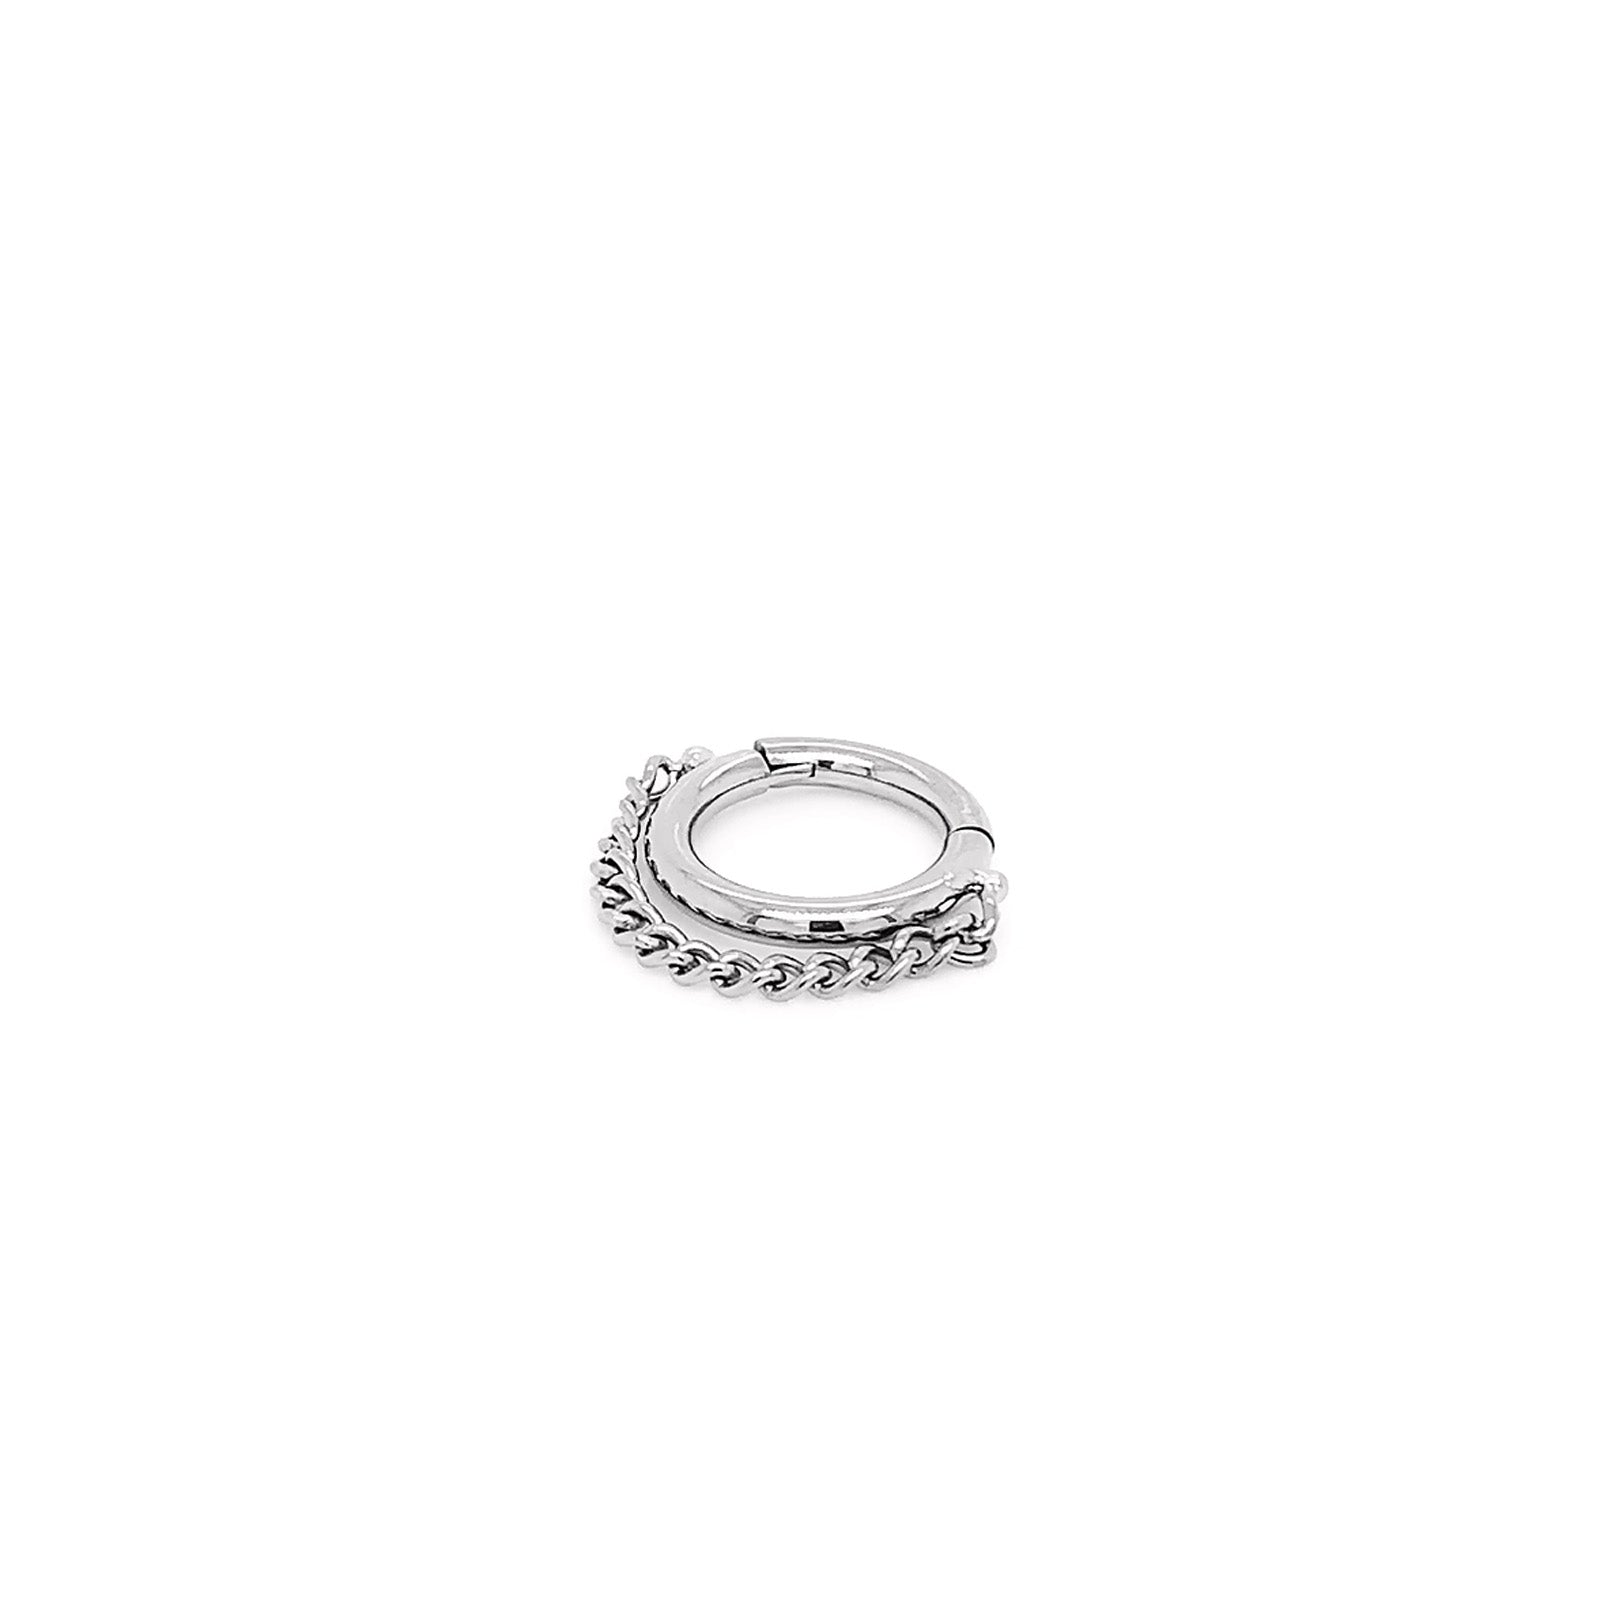 Single Chain Hinge Ring in Titanium by Zadamer Jewelry